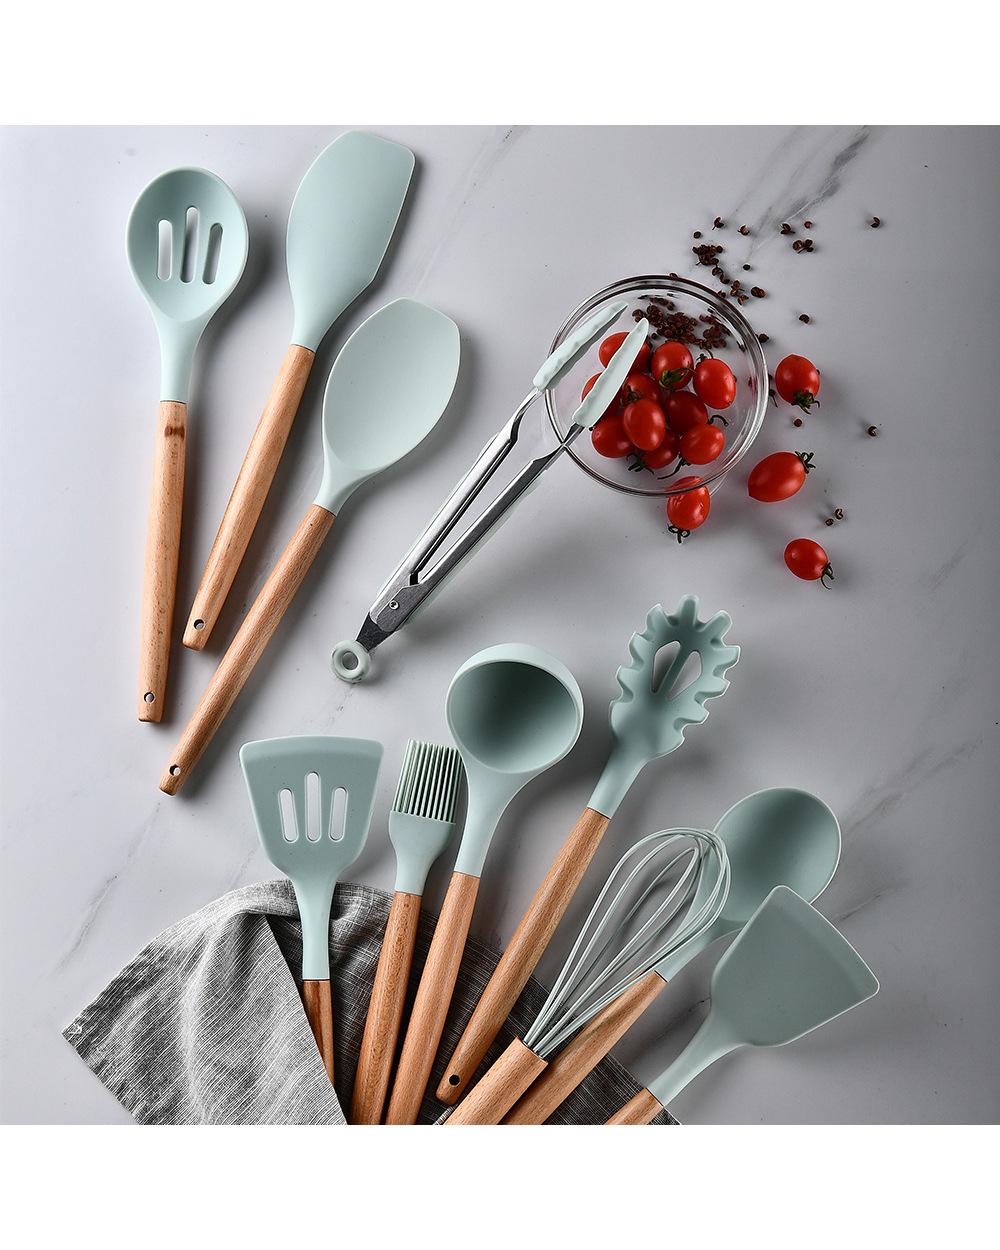 Silicone Cooking Utensils  Silicone Cooking Utensils 4